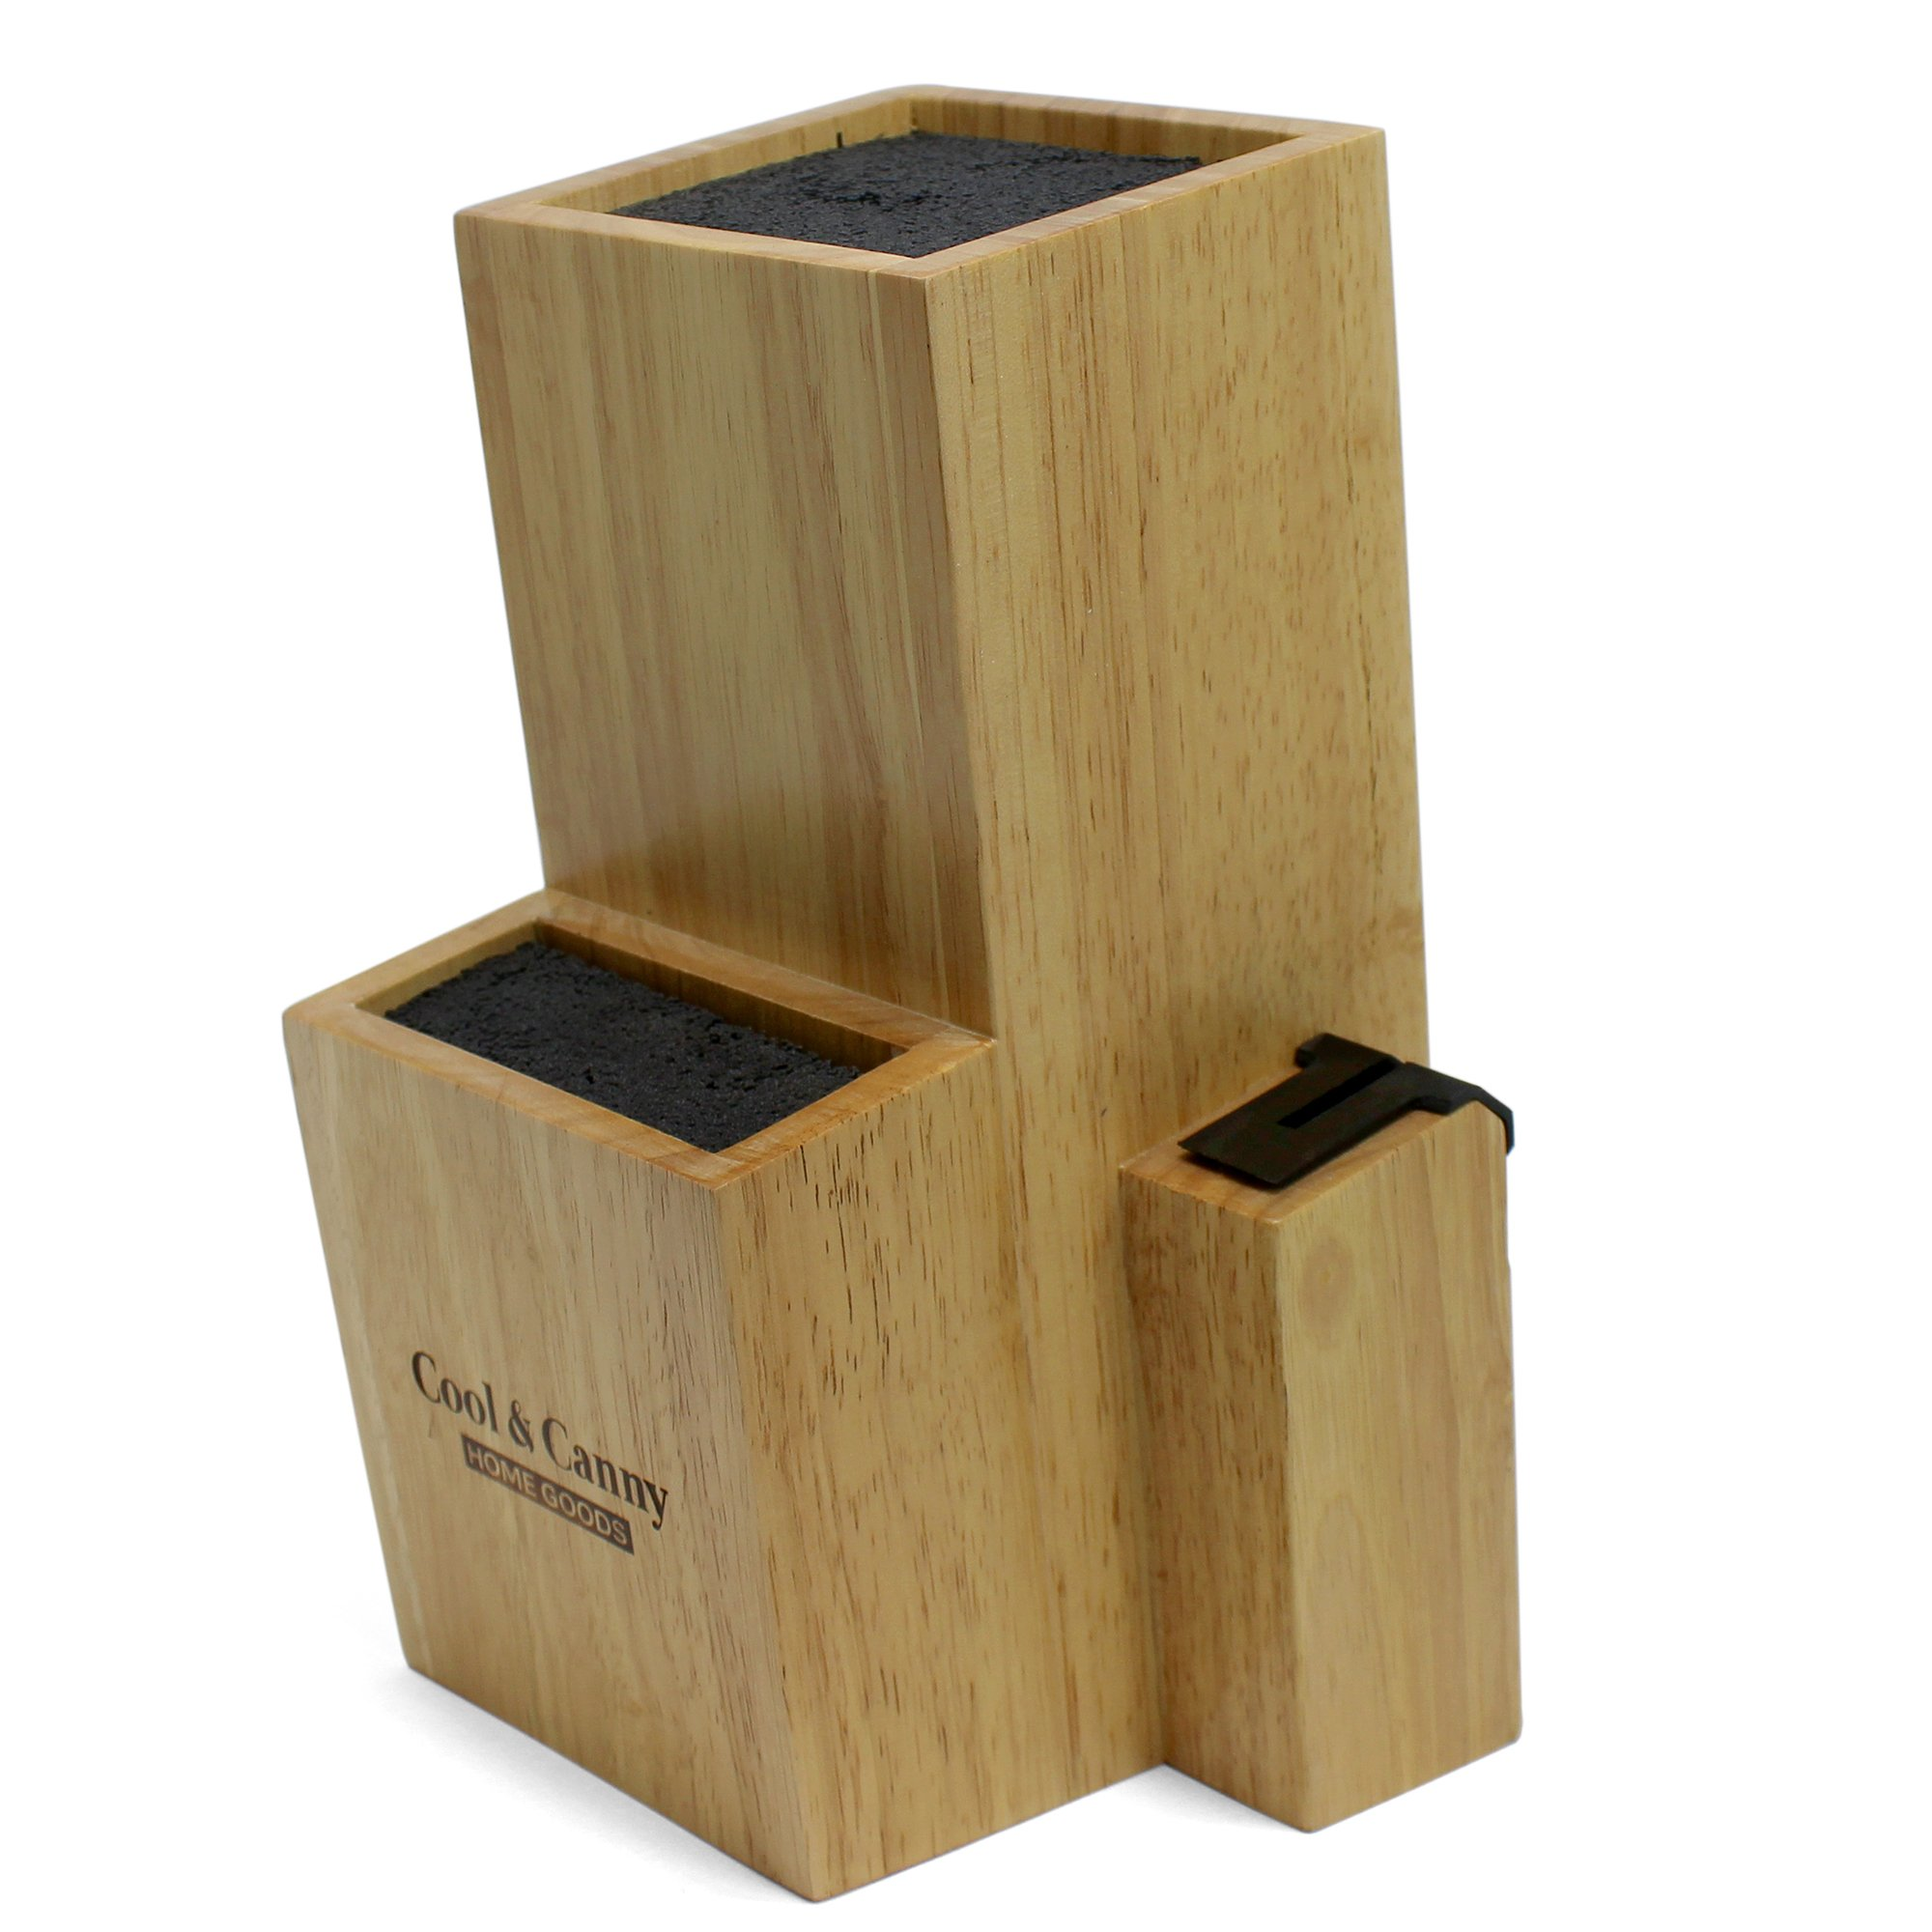 Cool & Canny 2 Tier Universal Bamboo Knife Block with Knife Sharpener by Cool & Canny